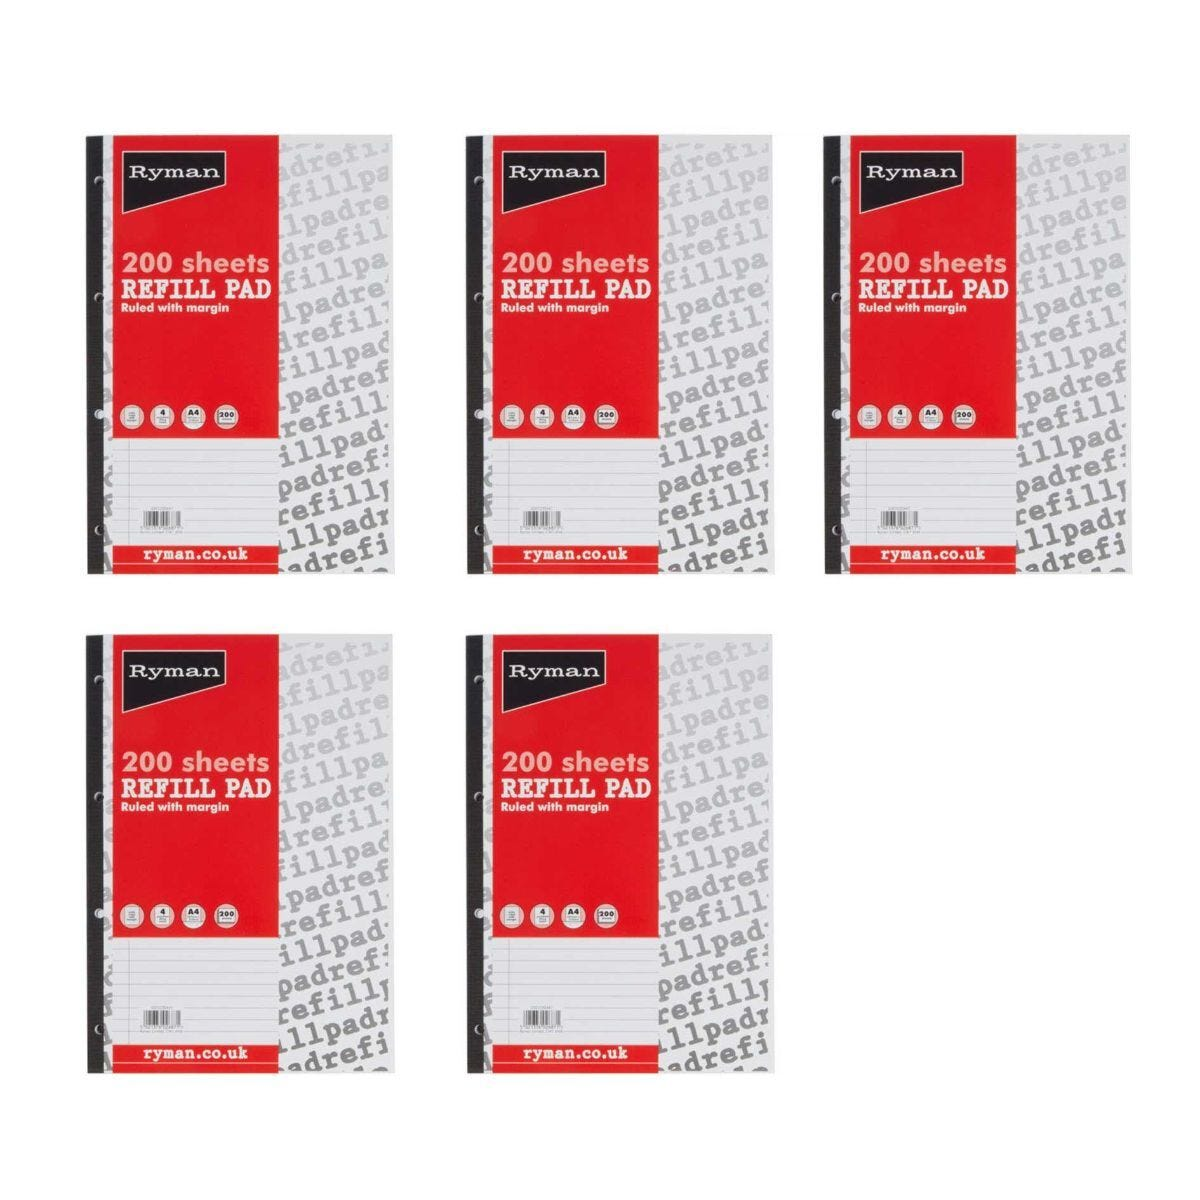 Ryman Refill Pad A4 Ruled With Wide Margin 400 Pages 200 Sheets Pack of 5